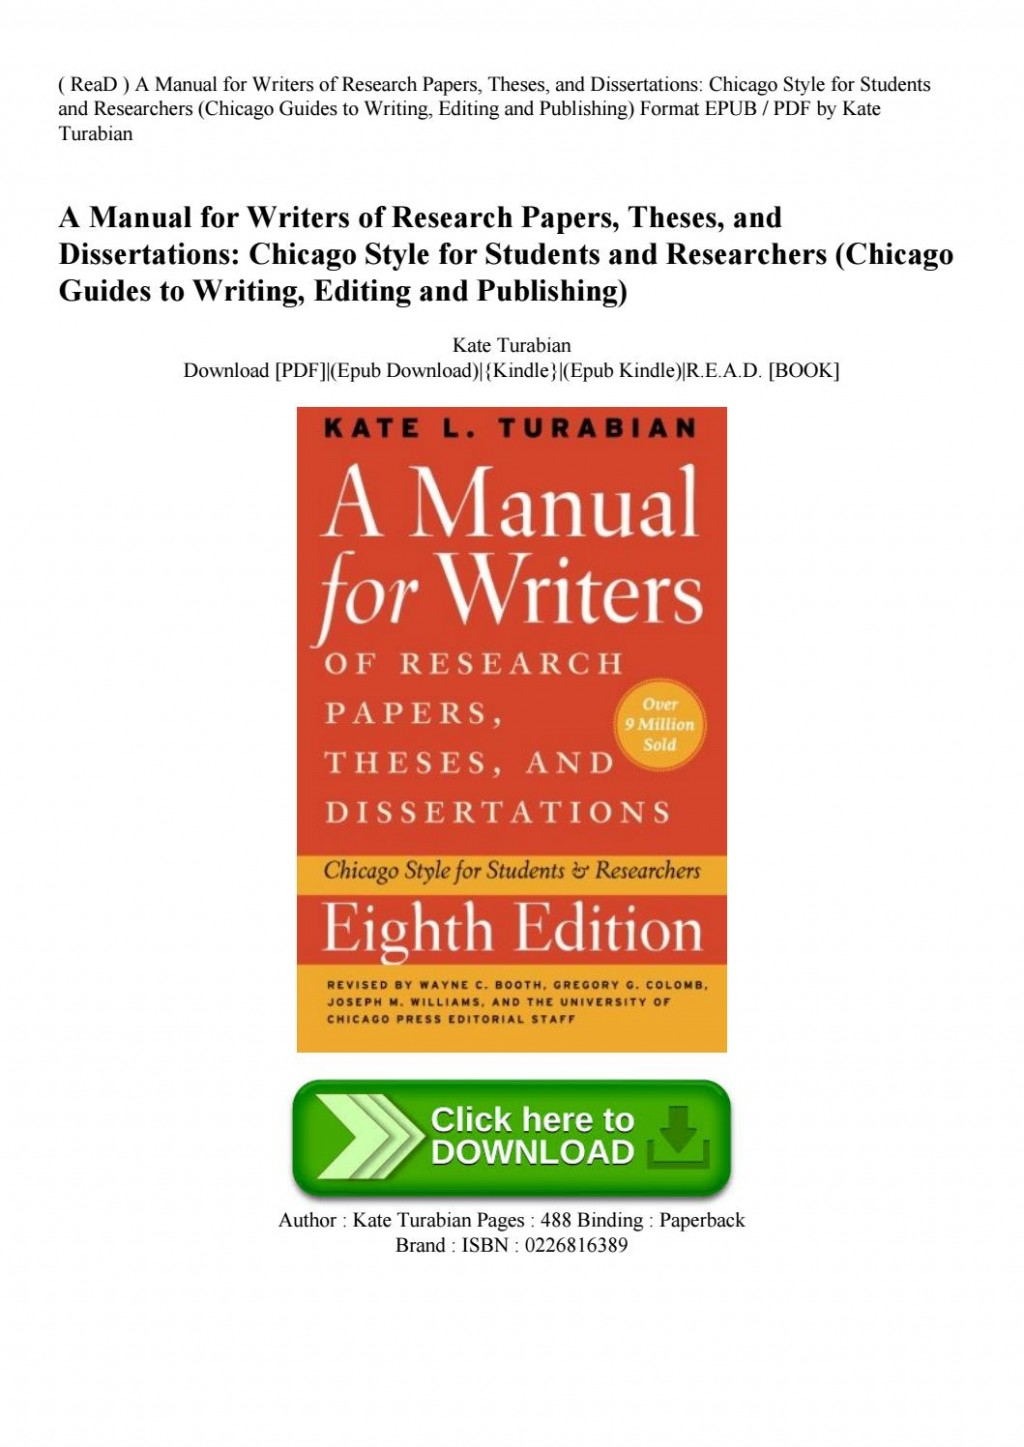 010 Research Paper Manual For Writers Of Papers Theses And Dissertations Page 1 Sensational A 8th Edition Pdf Eighth Large